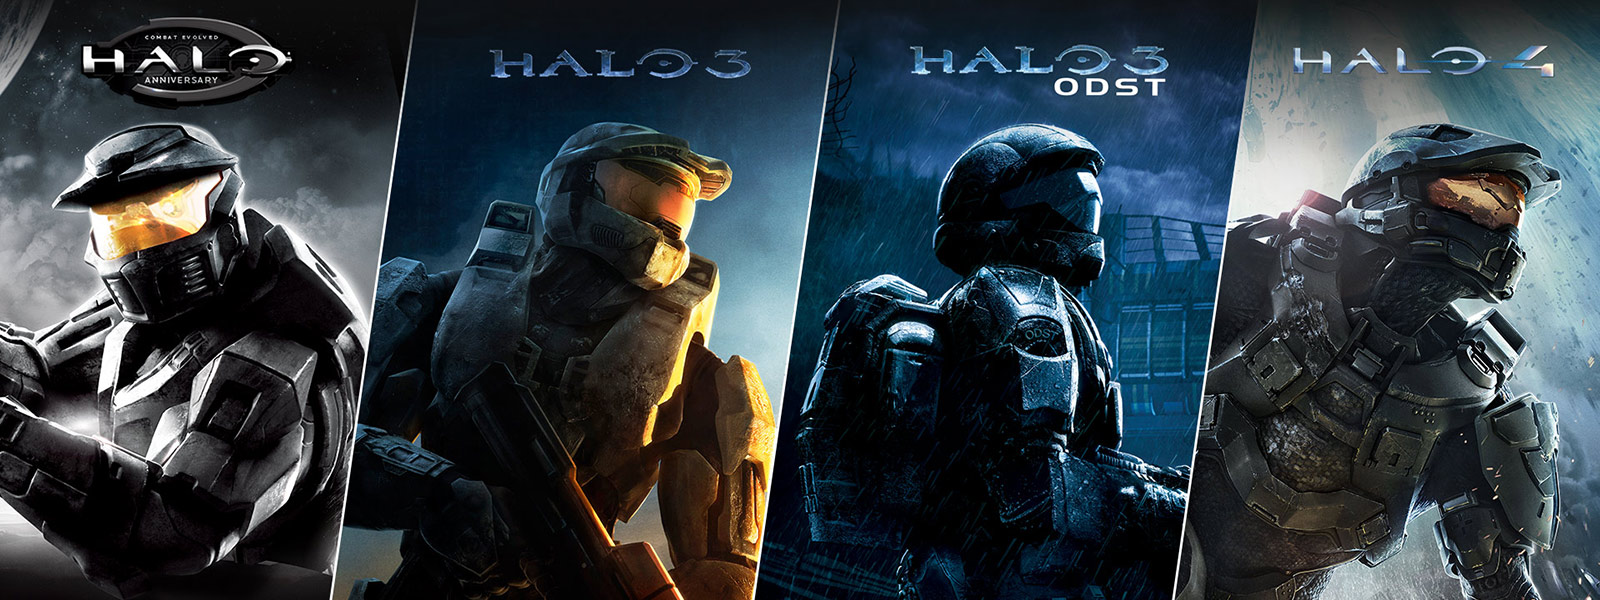 Collage of Halo anniversary, Halo 3, Halo 3 ODST, Halo 4